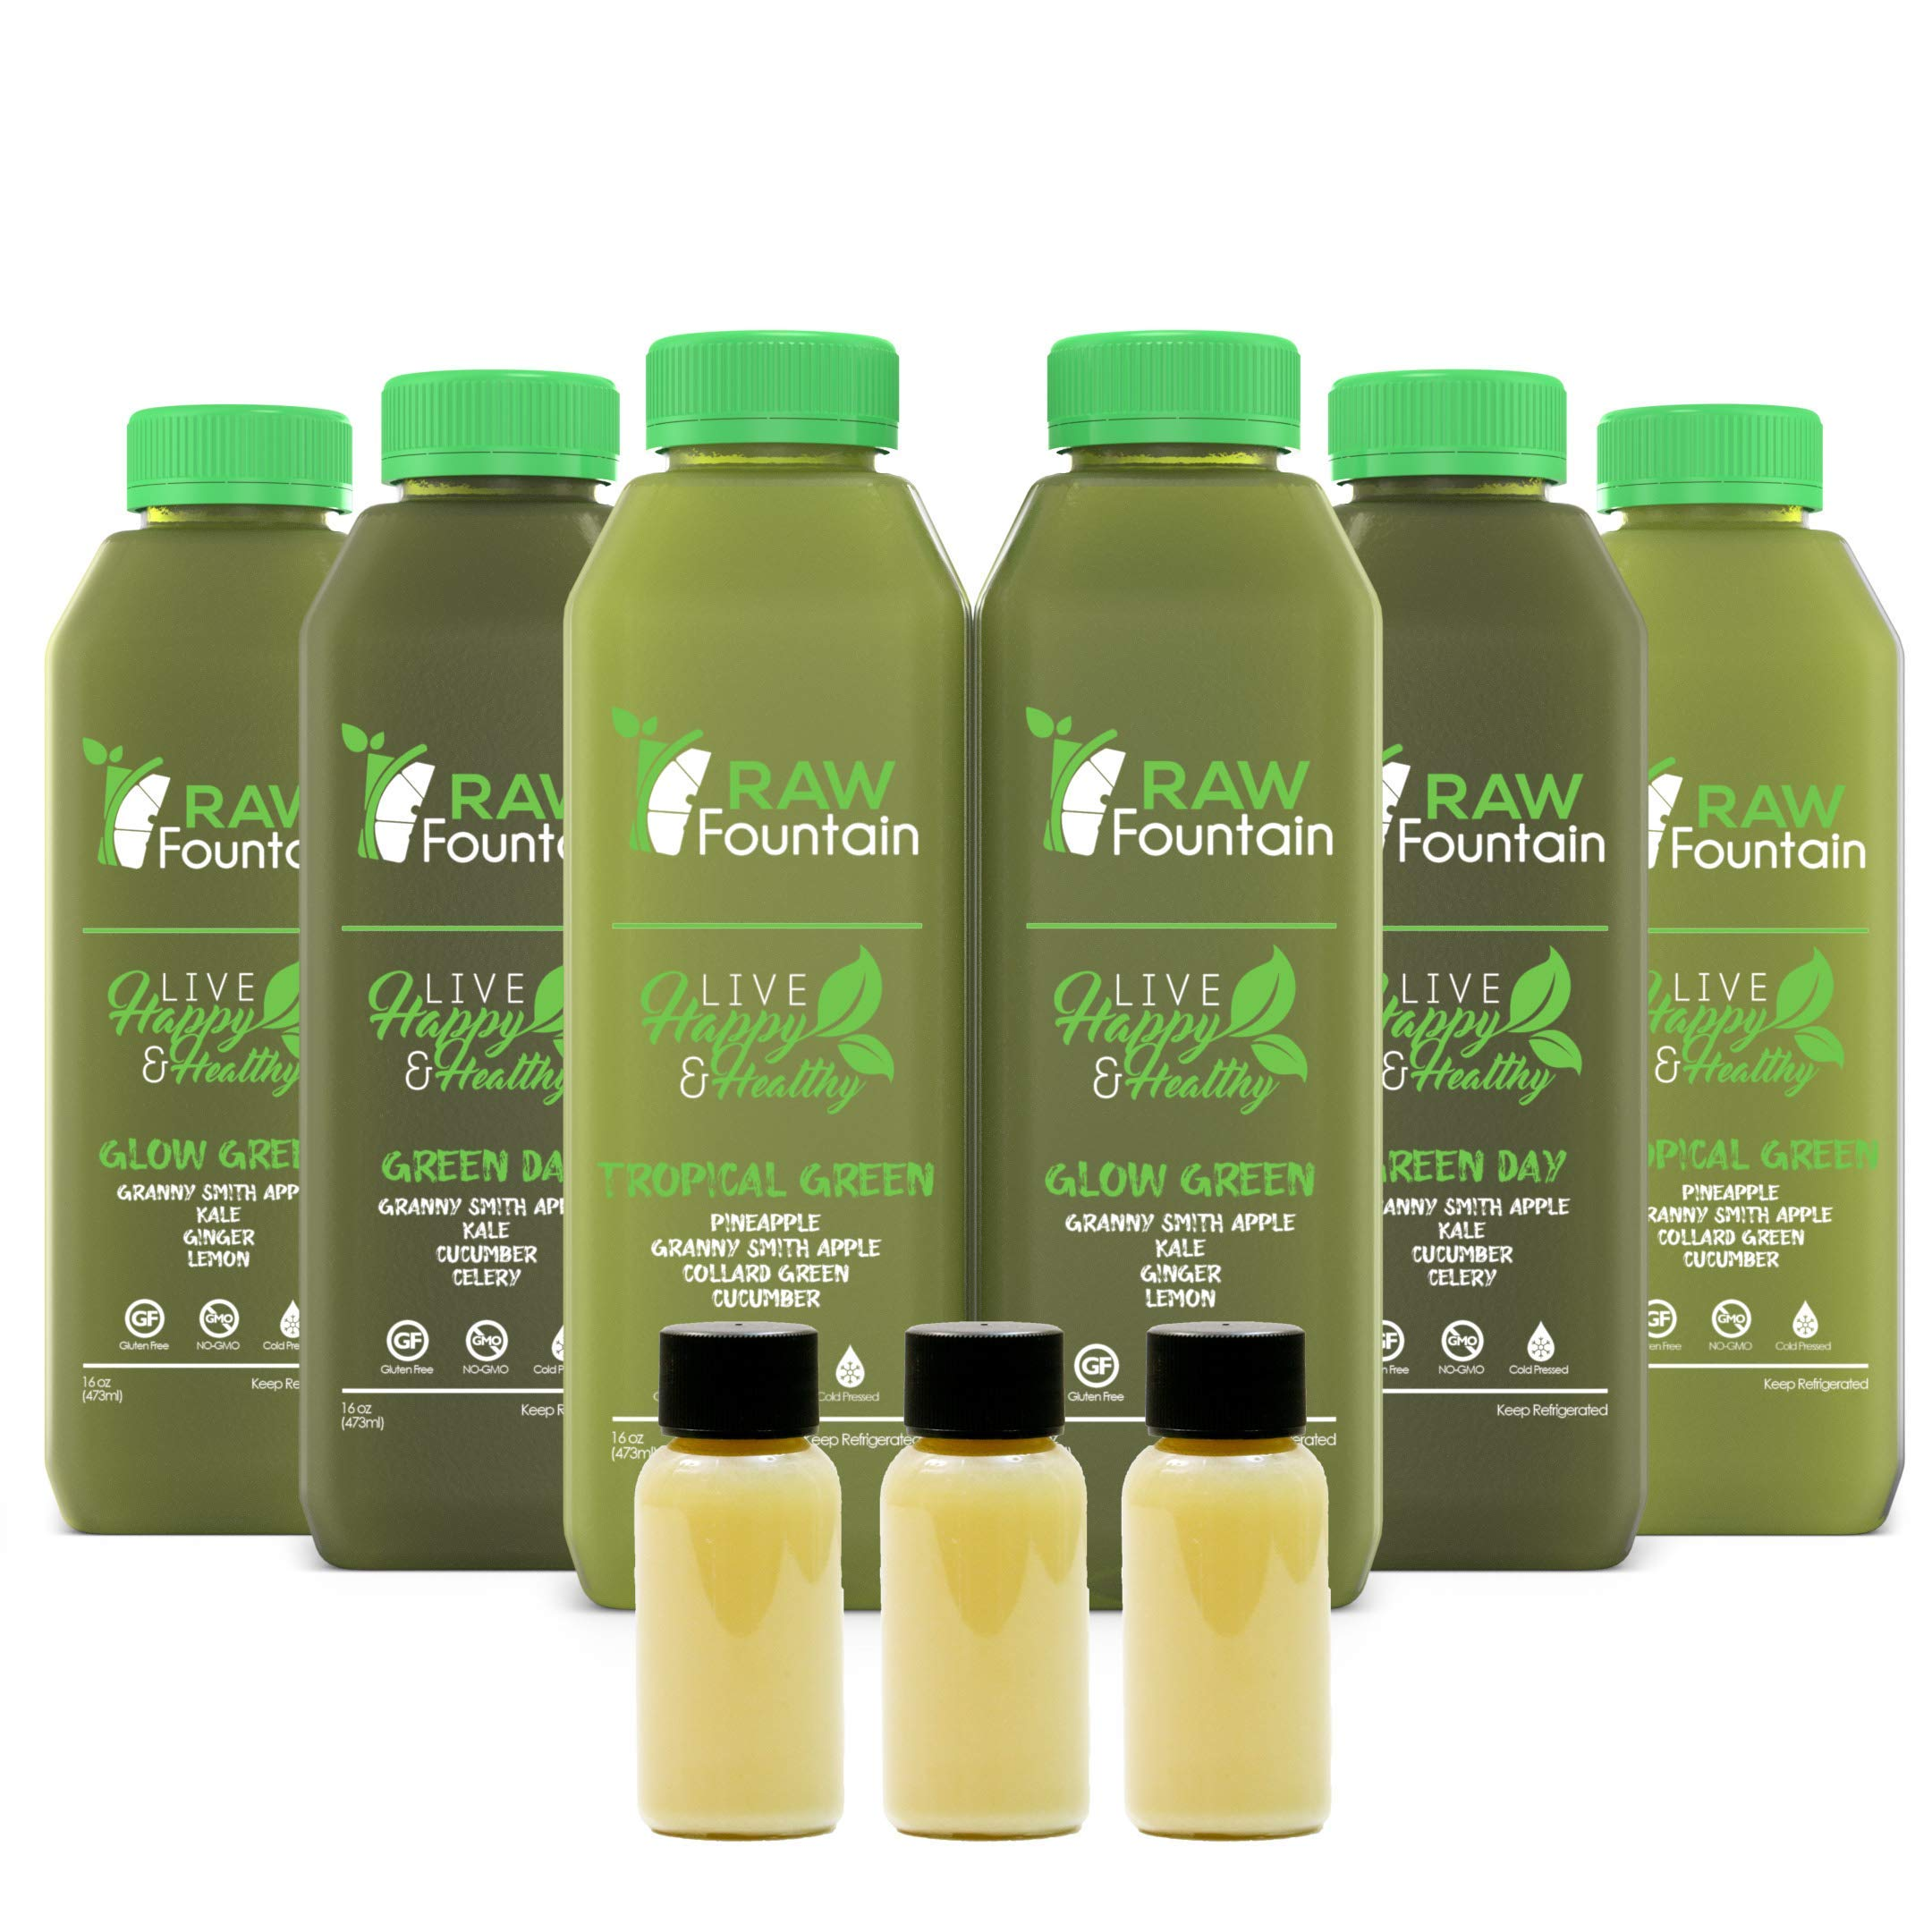 5 Day All Green Juice Cleanse by Raw Fountain - 100% Fresh Natural Organic Raw Green Juices - Give Your Body The Detox It Deserves! - 30 Bottles (16 fl oz) + 5 Bonus Ginger Shots (5 Day)